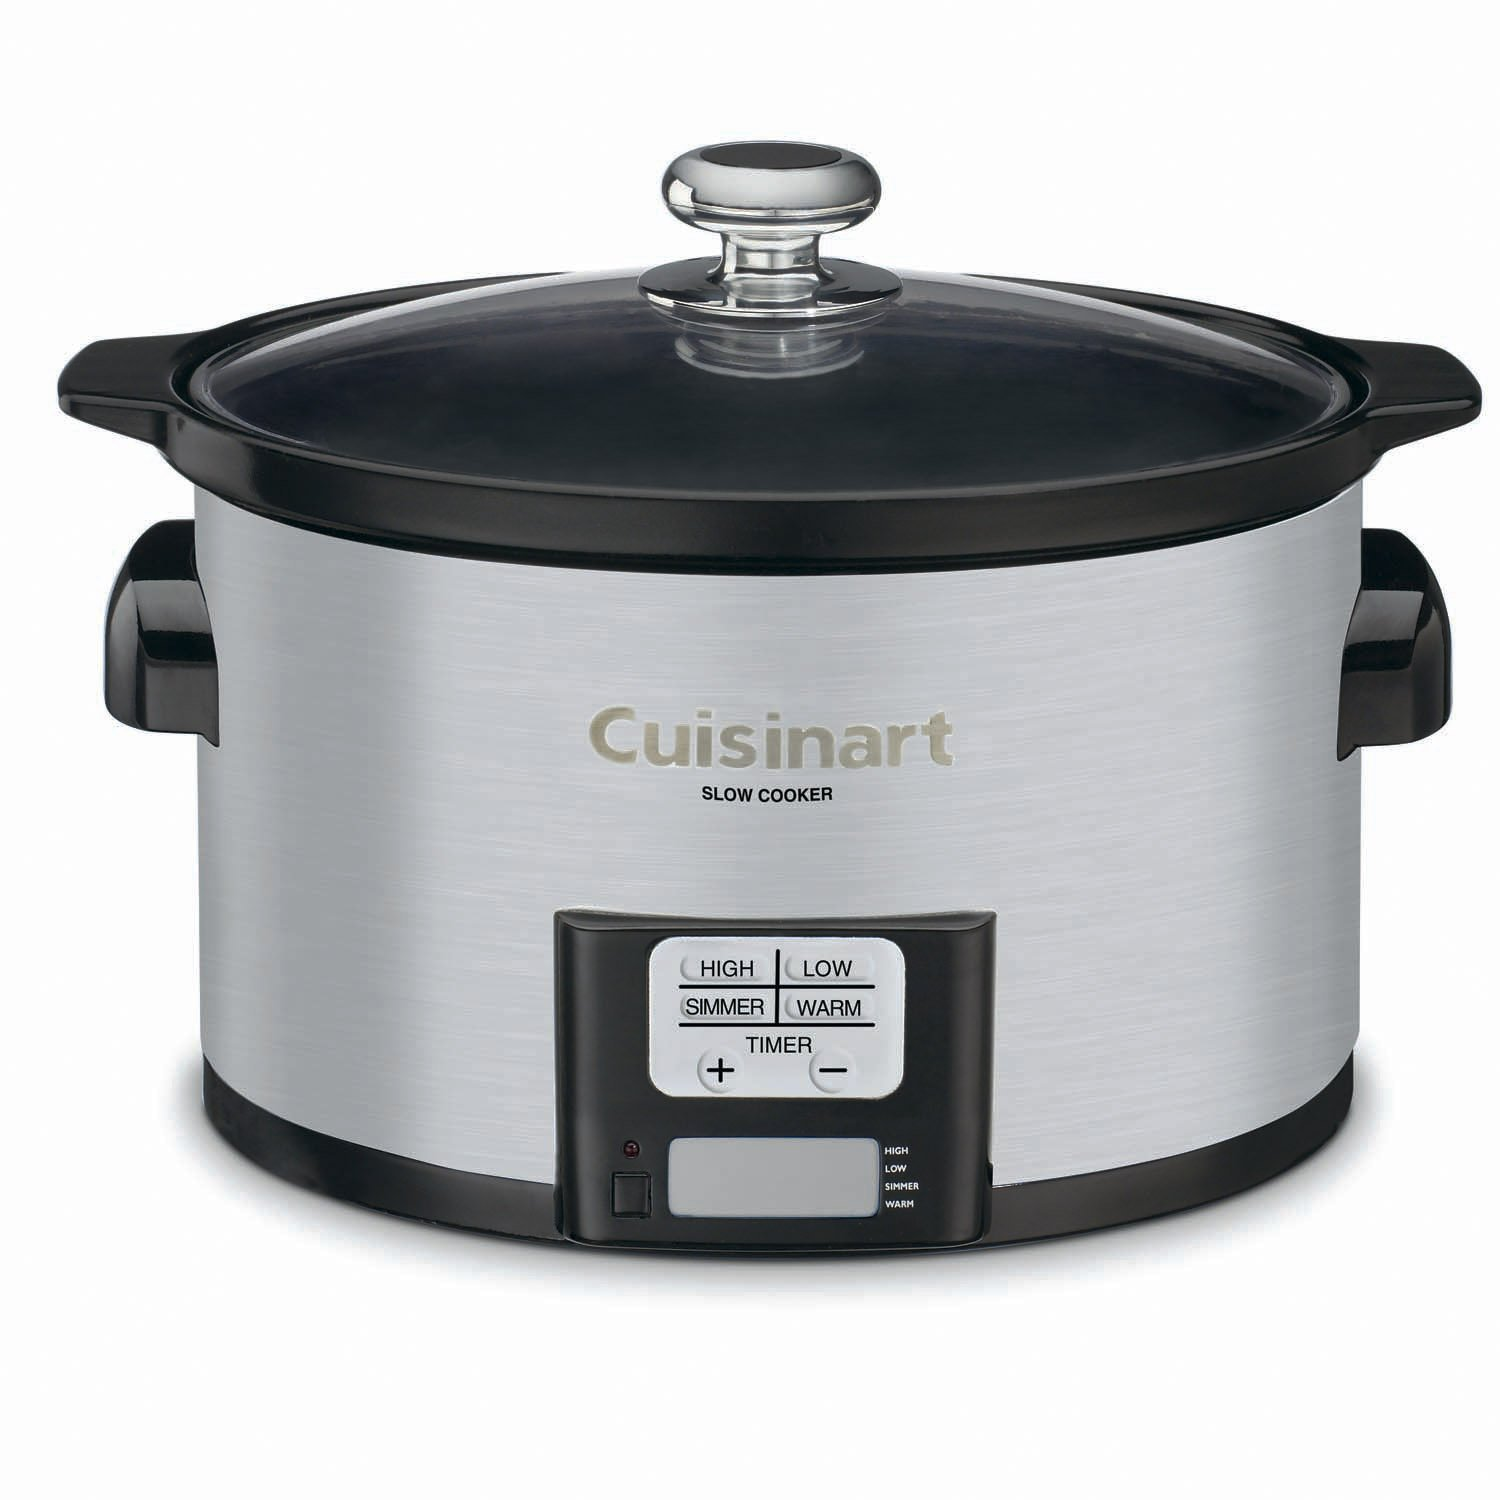 Cuisinart Programmable Slow Cooker PSC-350 : Review